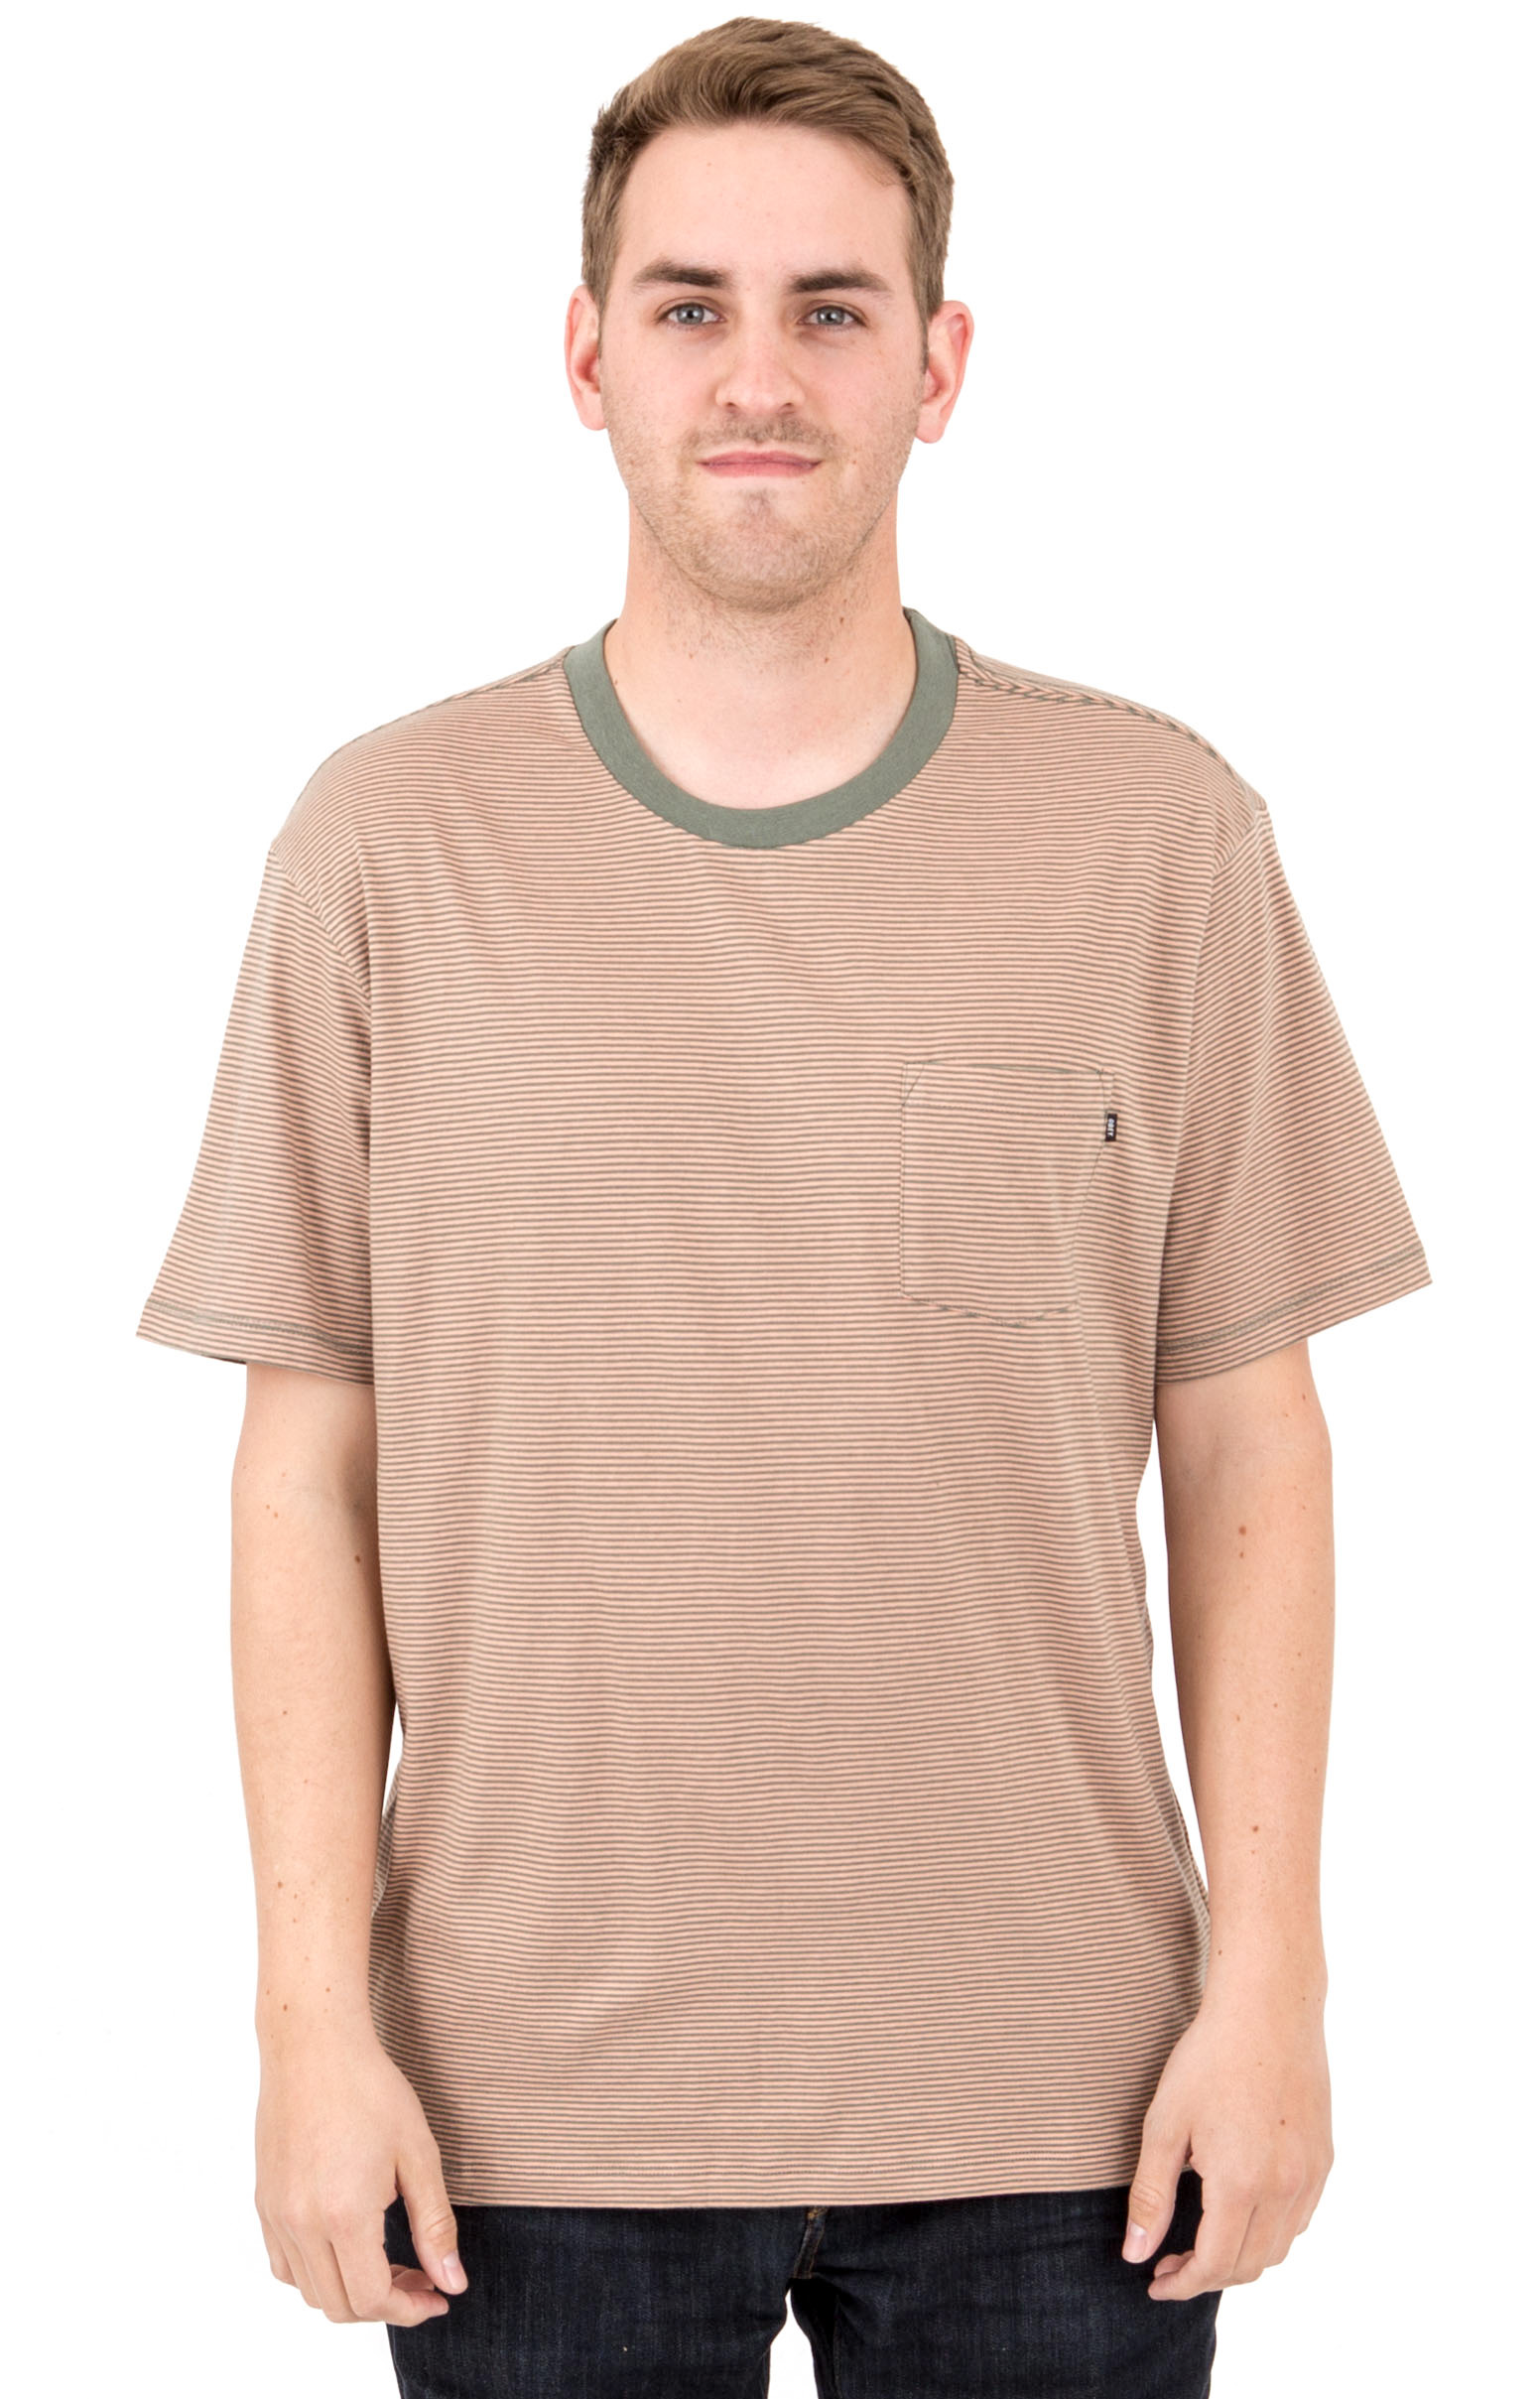 Wisemaker Pocket T-Shirt - Dusty Rose